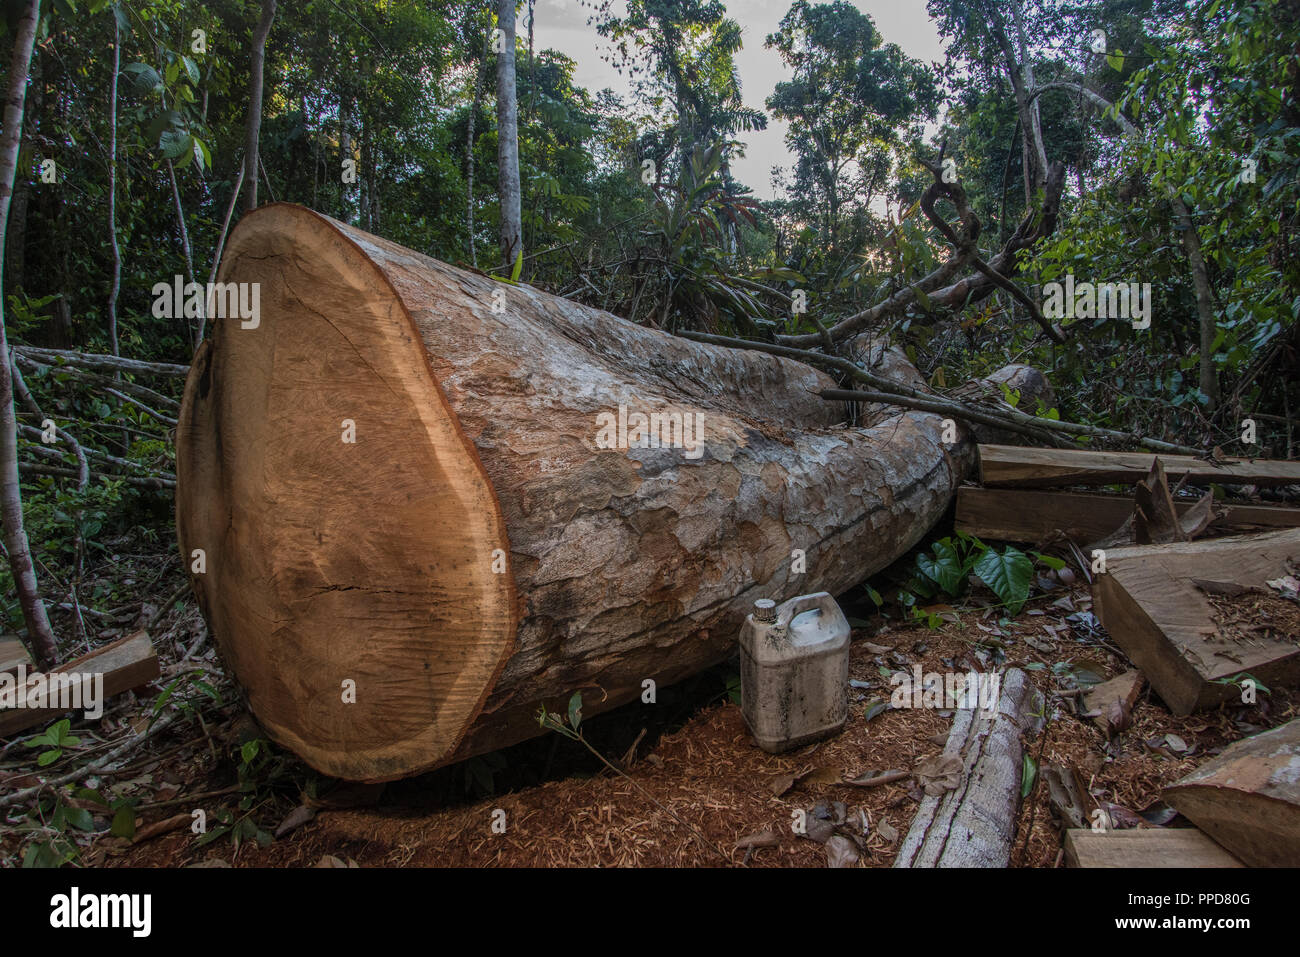 A logging site in Madre de Dios, Peru. Illegal logging is a huge threat to the Amazon rainforest.  Here a mature hardwood tree has been felled. Stock Photo